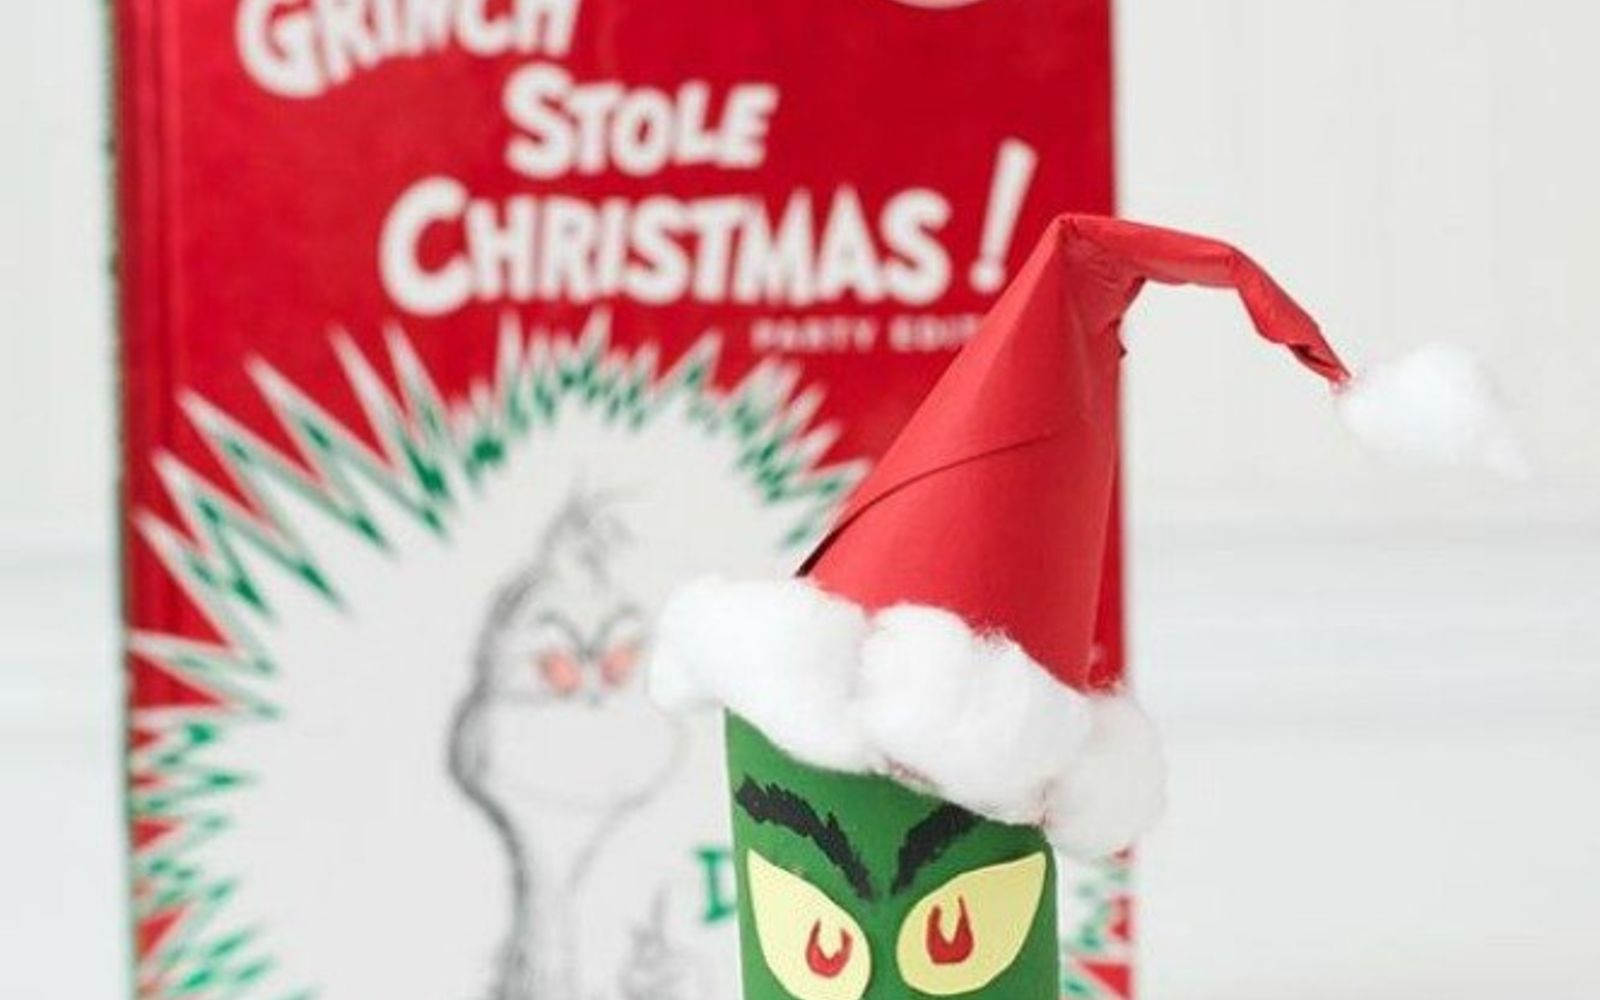 s cut up cardboard for these breathtaking christmas ideas, christmas decorations, Paint them into the Grinch